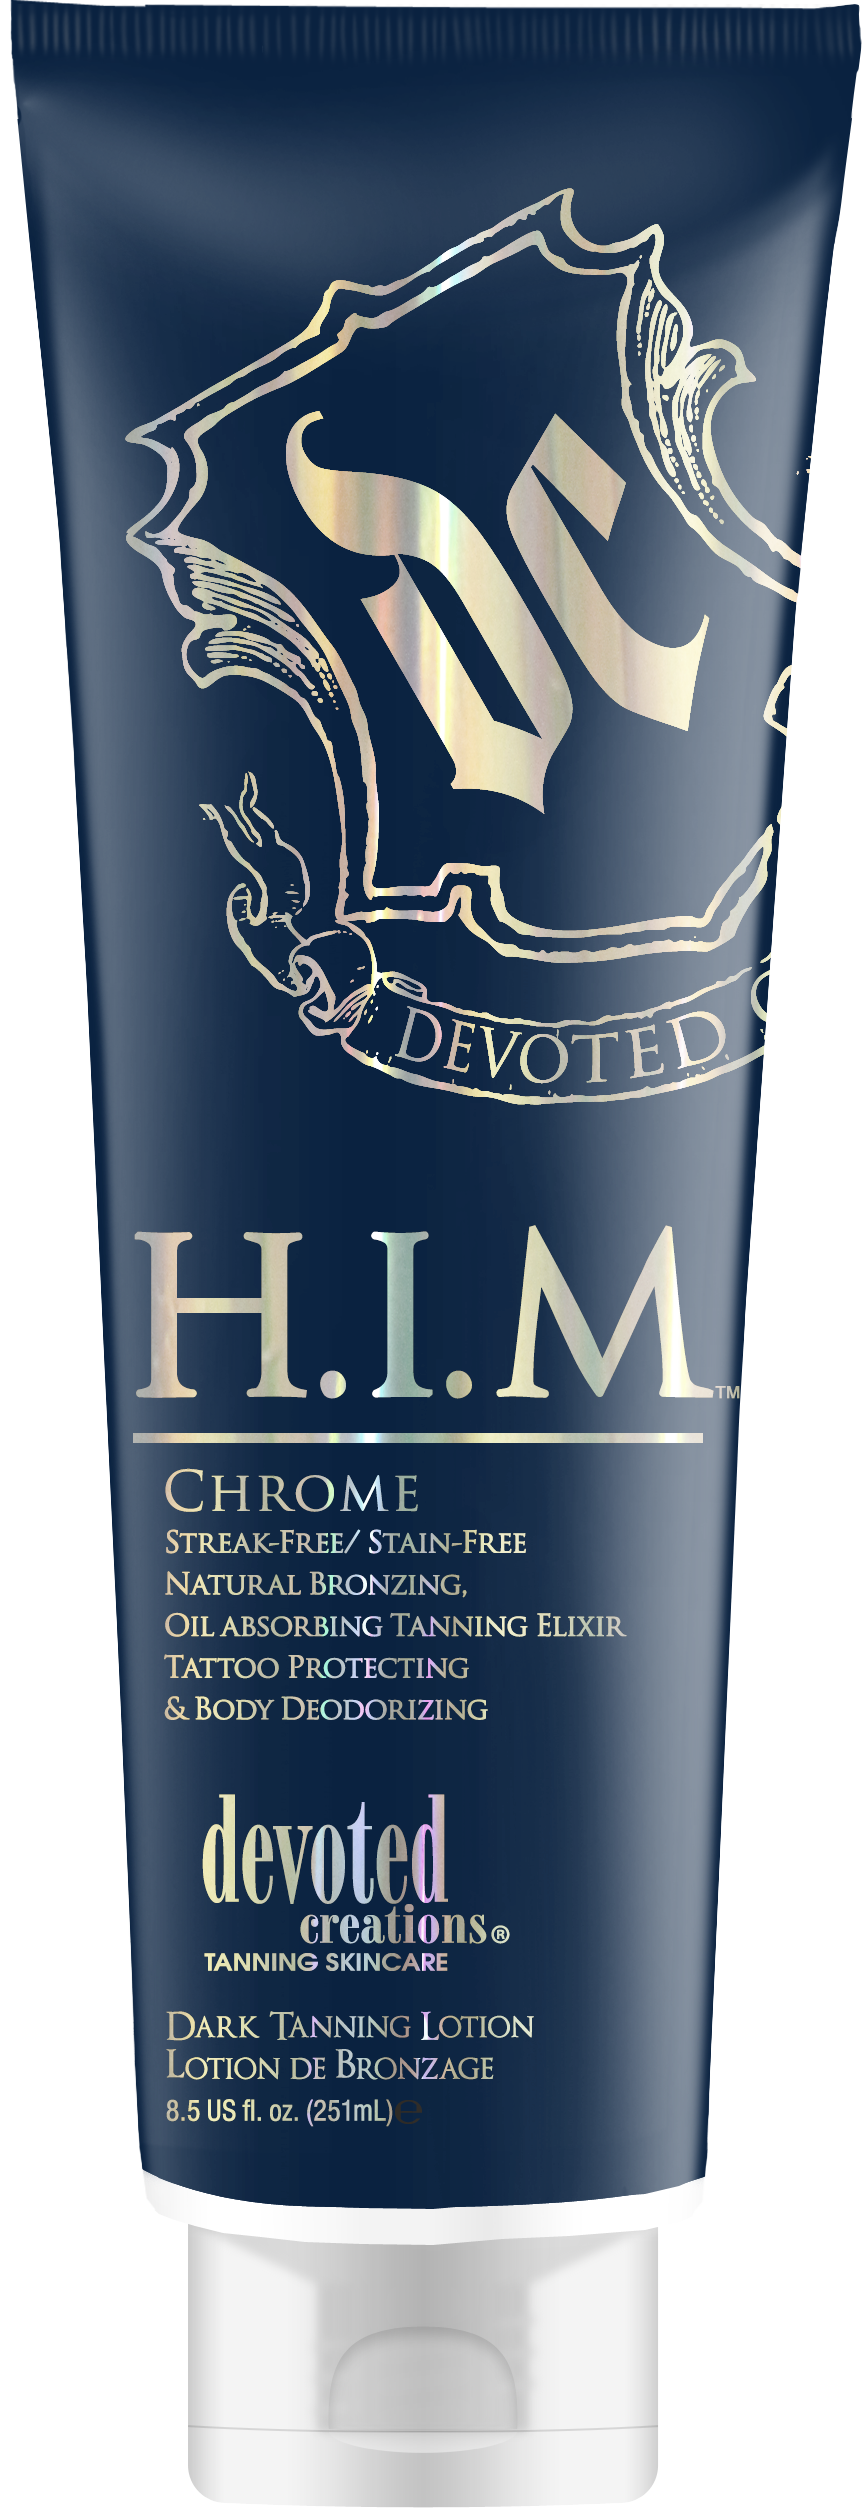 HIM Chrome Streak-Free/ Stain-Free Natural Bronzing, Oil